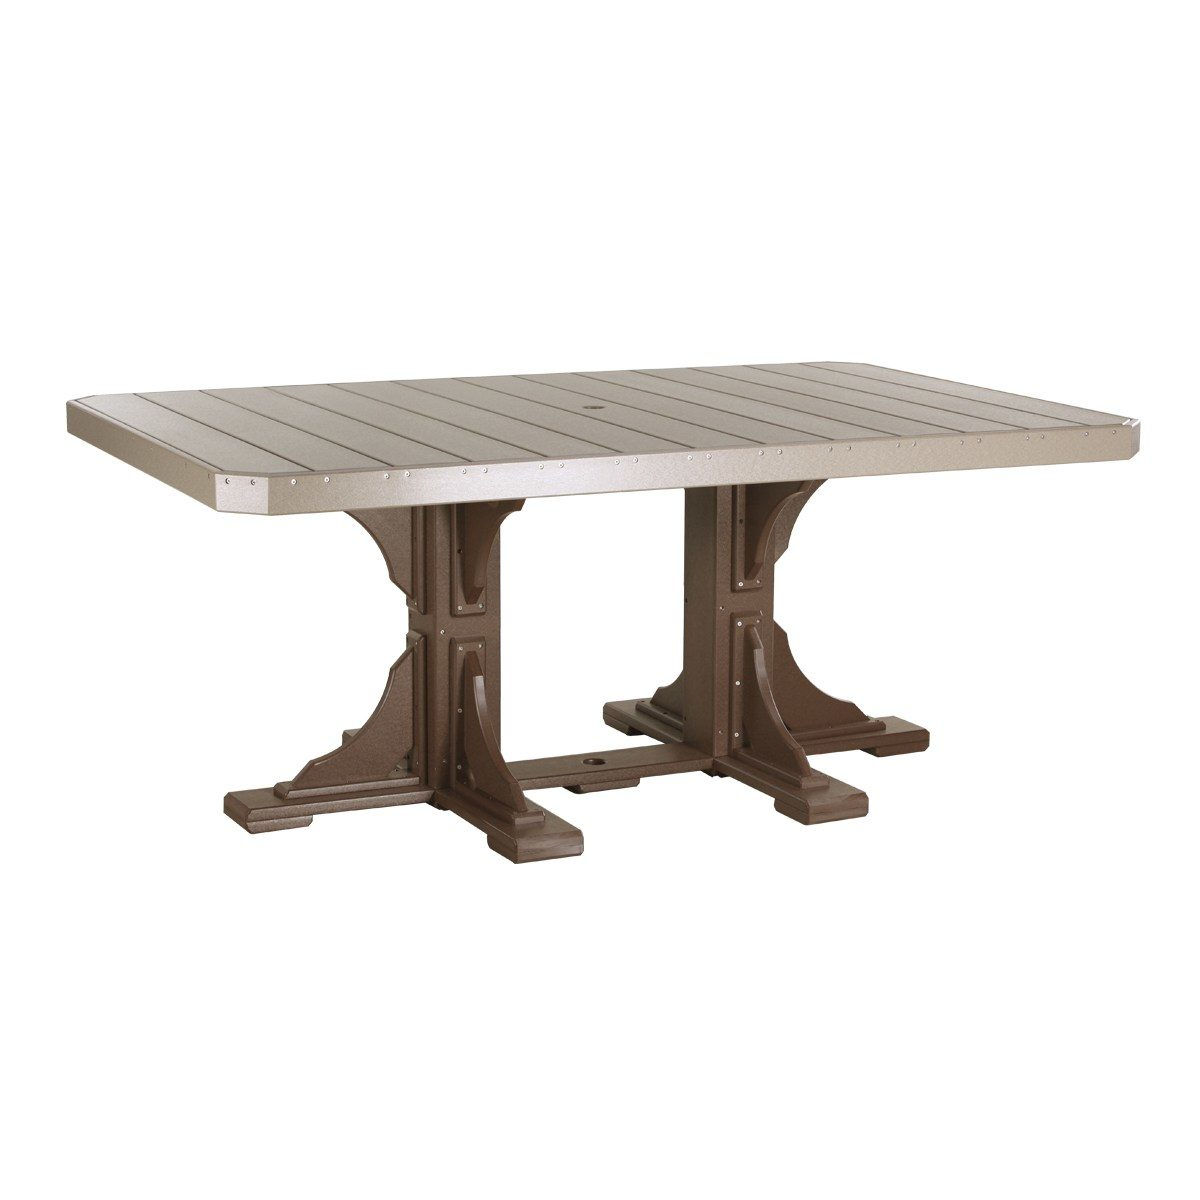 Rectangular Counter Table - Weatherwood & Chestnut Brown (Dining Height Shown)